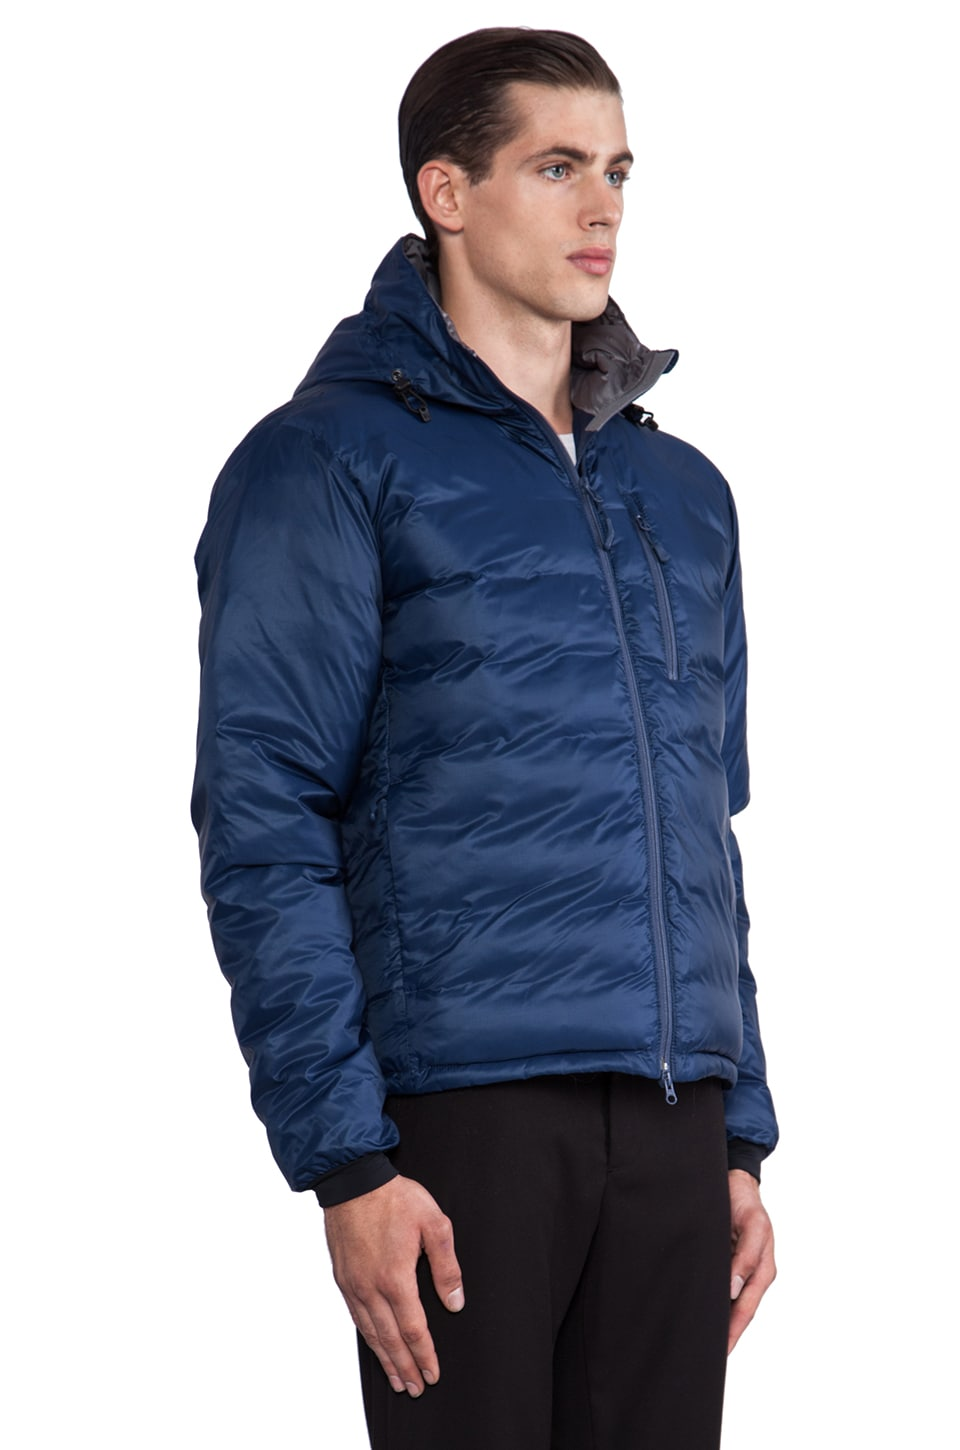 Canada Goose jackets replica 2016 - Canada Goose Lodge Hoody in Spirit Discontinued | REVOLVE